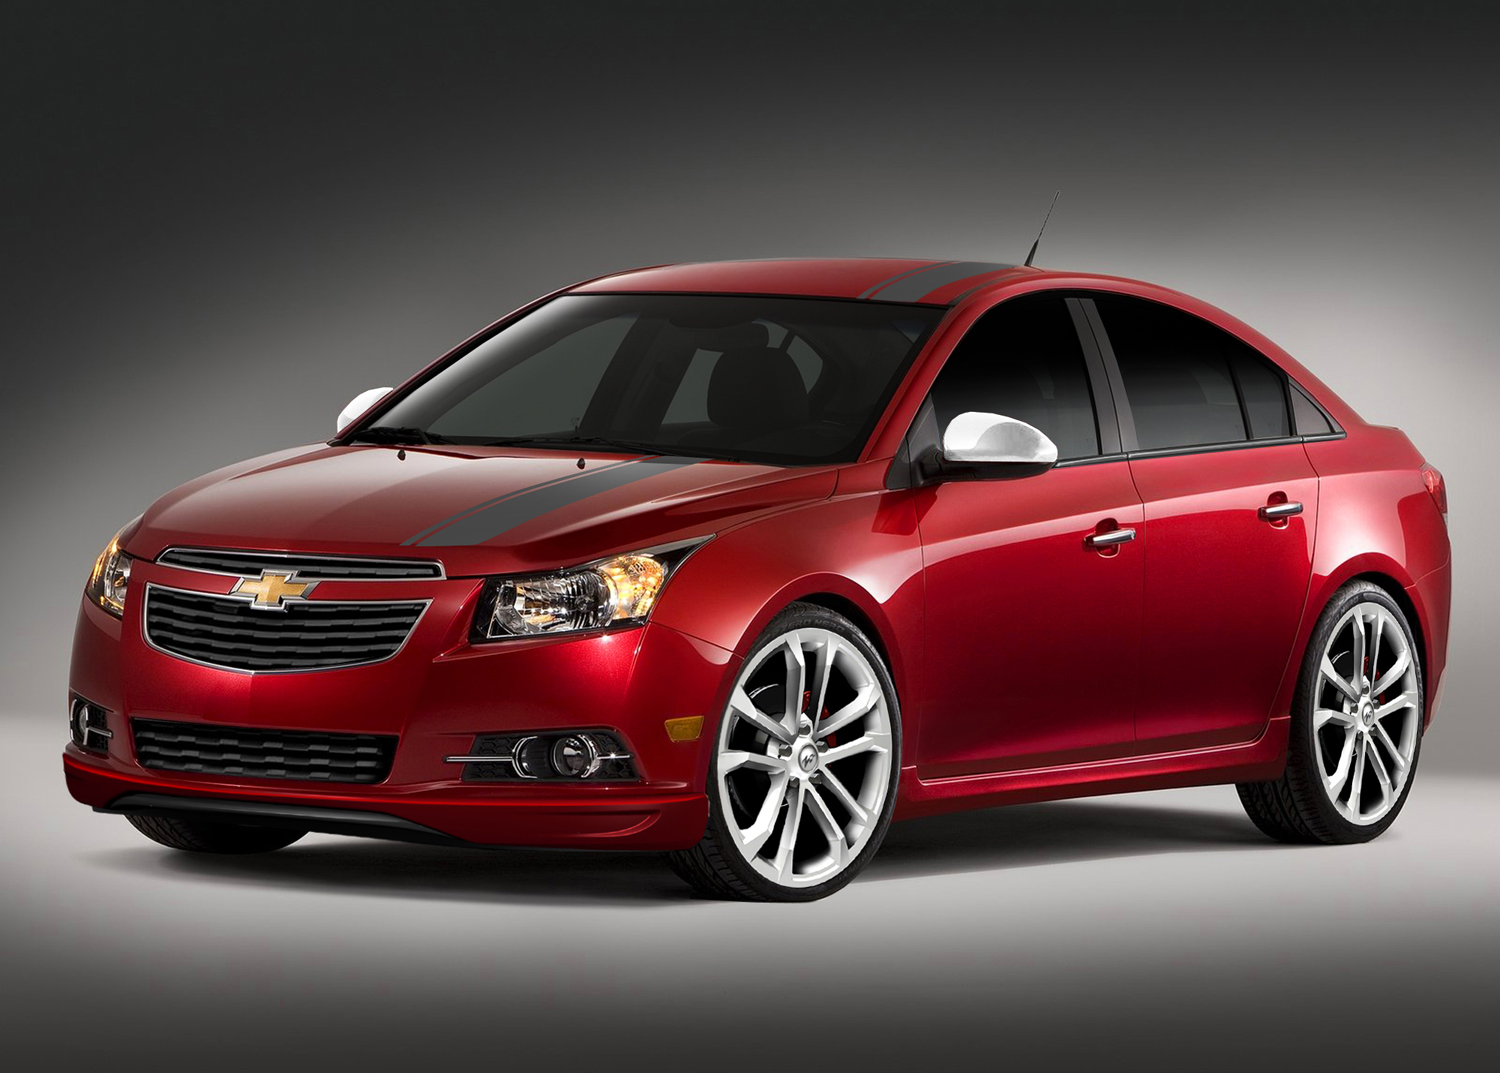 Chevy Cruze 18 Wheels Www Pixshark Com Images Galleries With A Bite